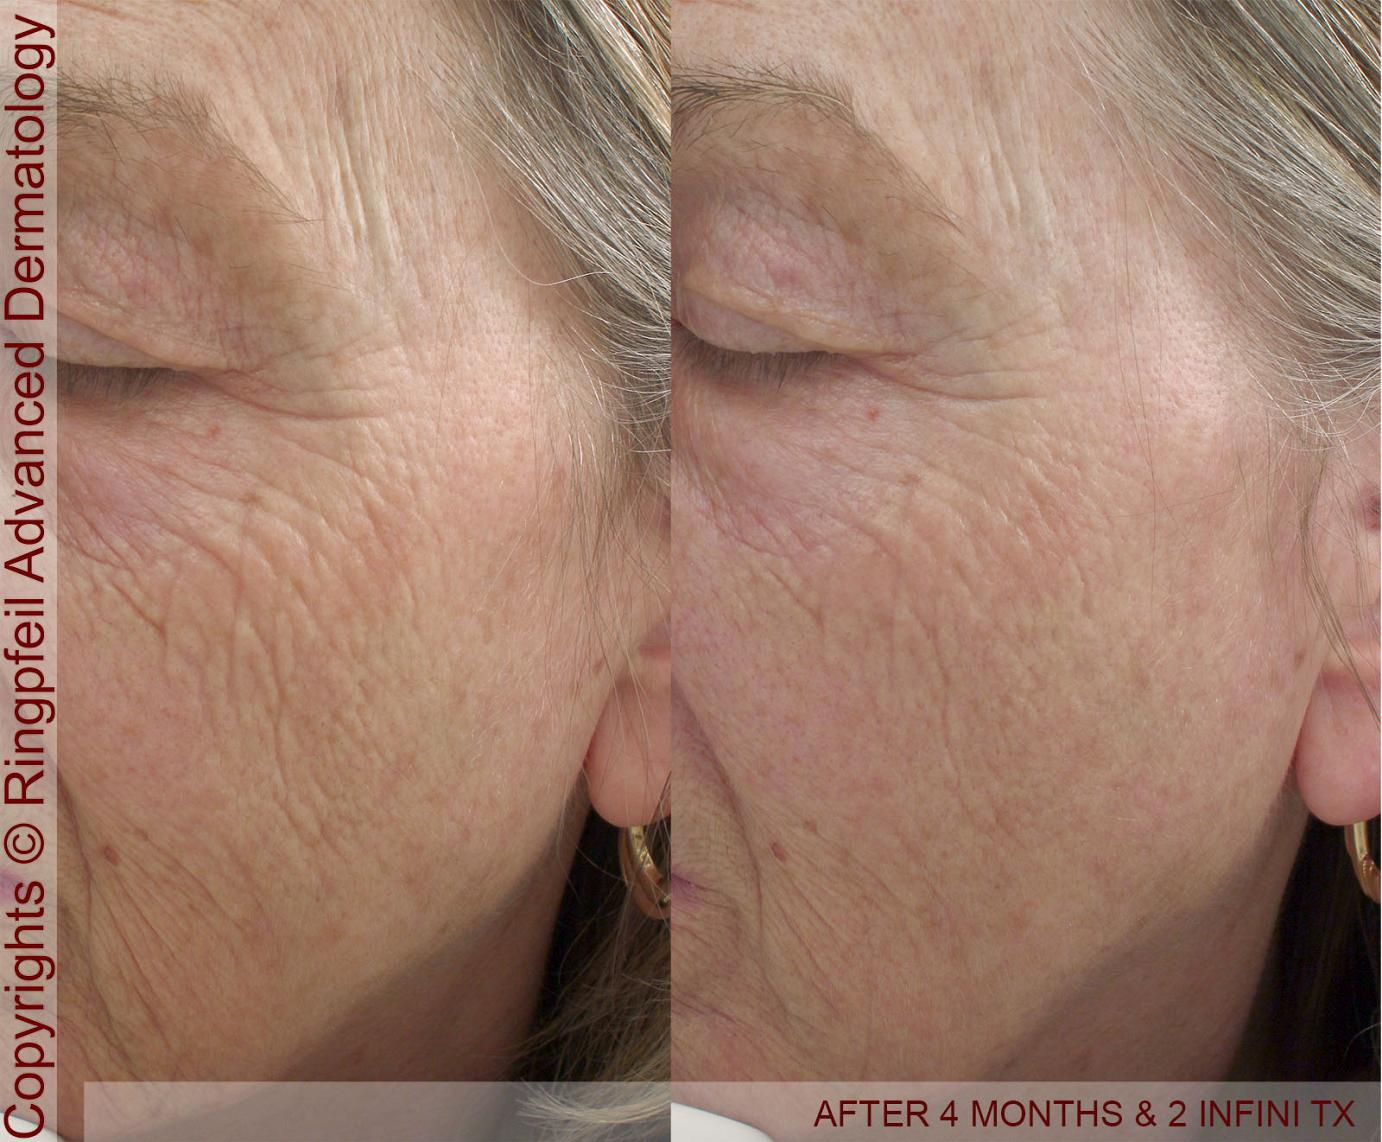 Facial skin tightening with Infini - after two treatmetns